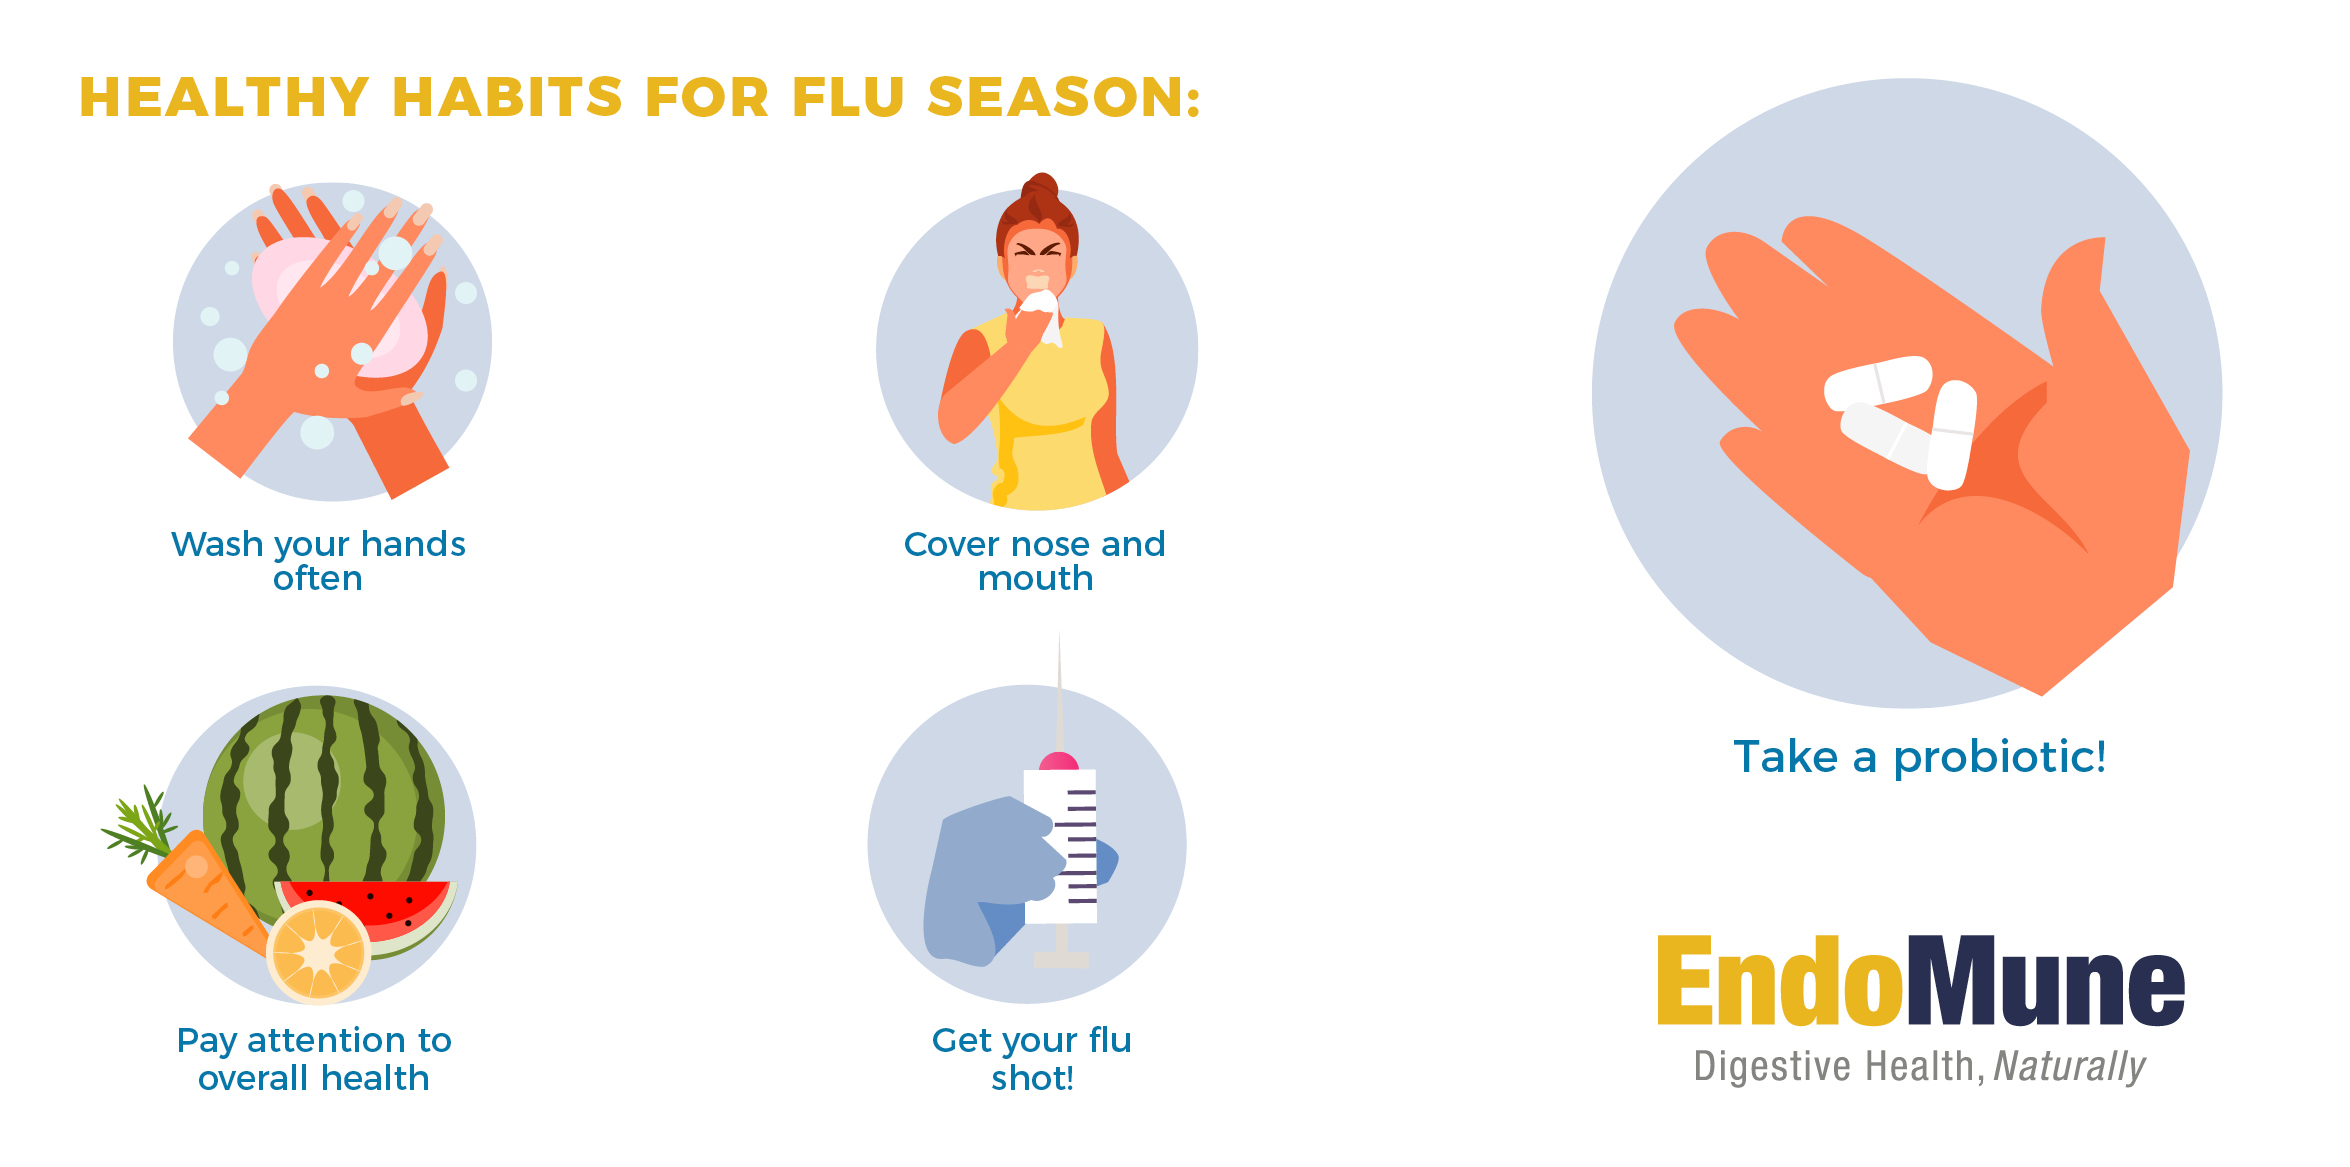 Graphic with healthy habits for flu season: 1. wash your hands often 2. Cover nose and mouth 3. Pay attention to overall health 4. Get your flu shot 5. Take a probiotic